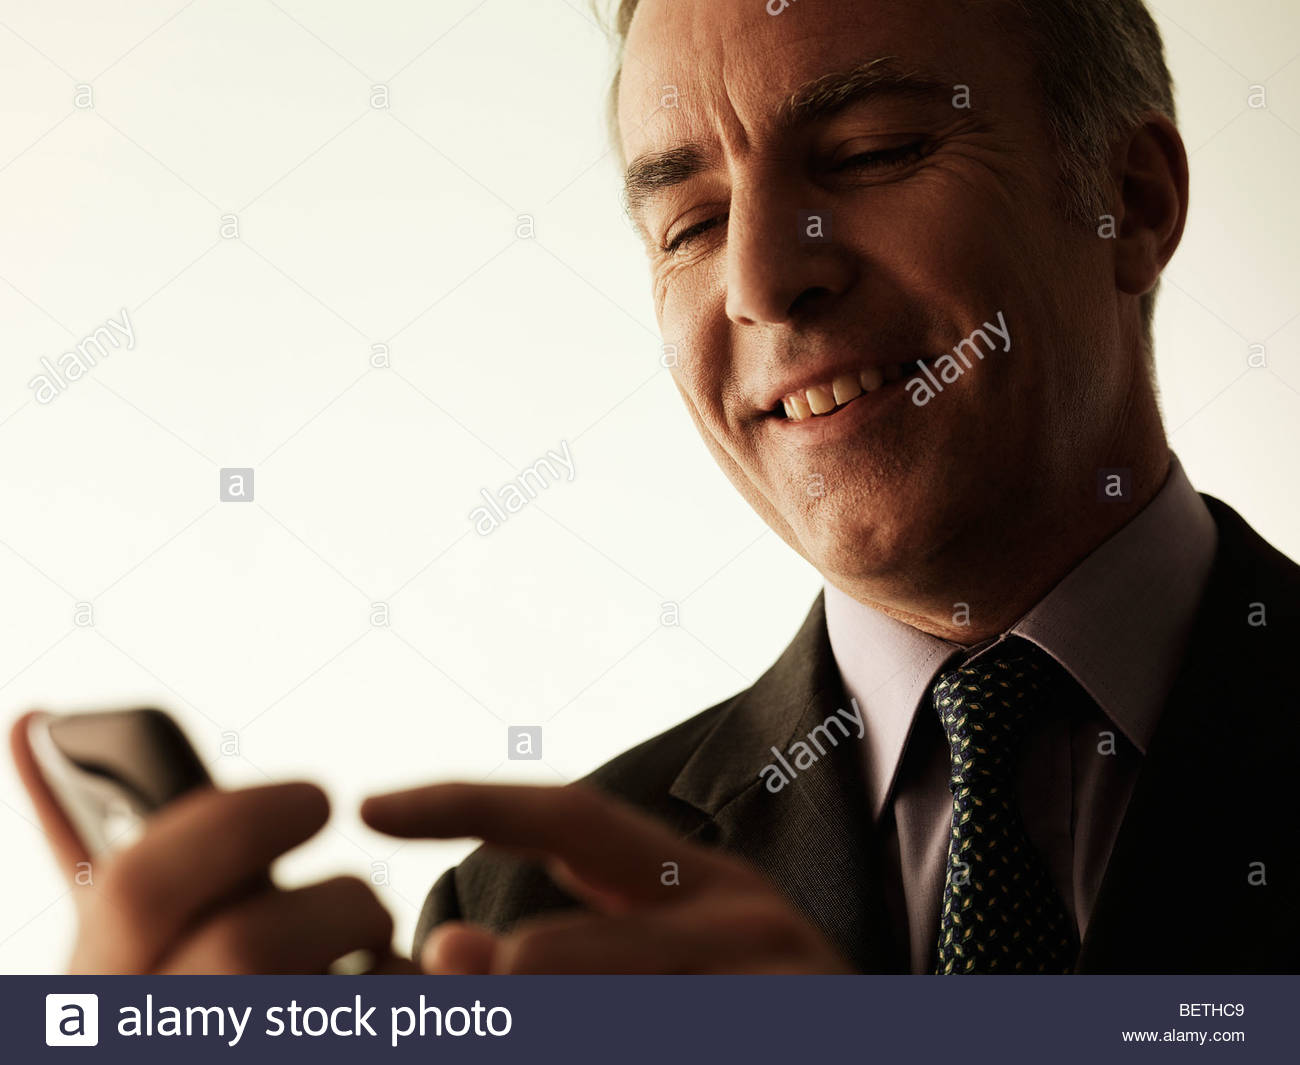 businessman using mobile technology - Stock Image